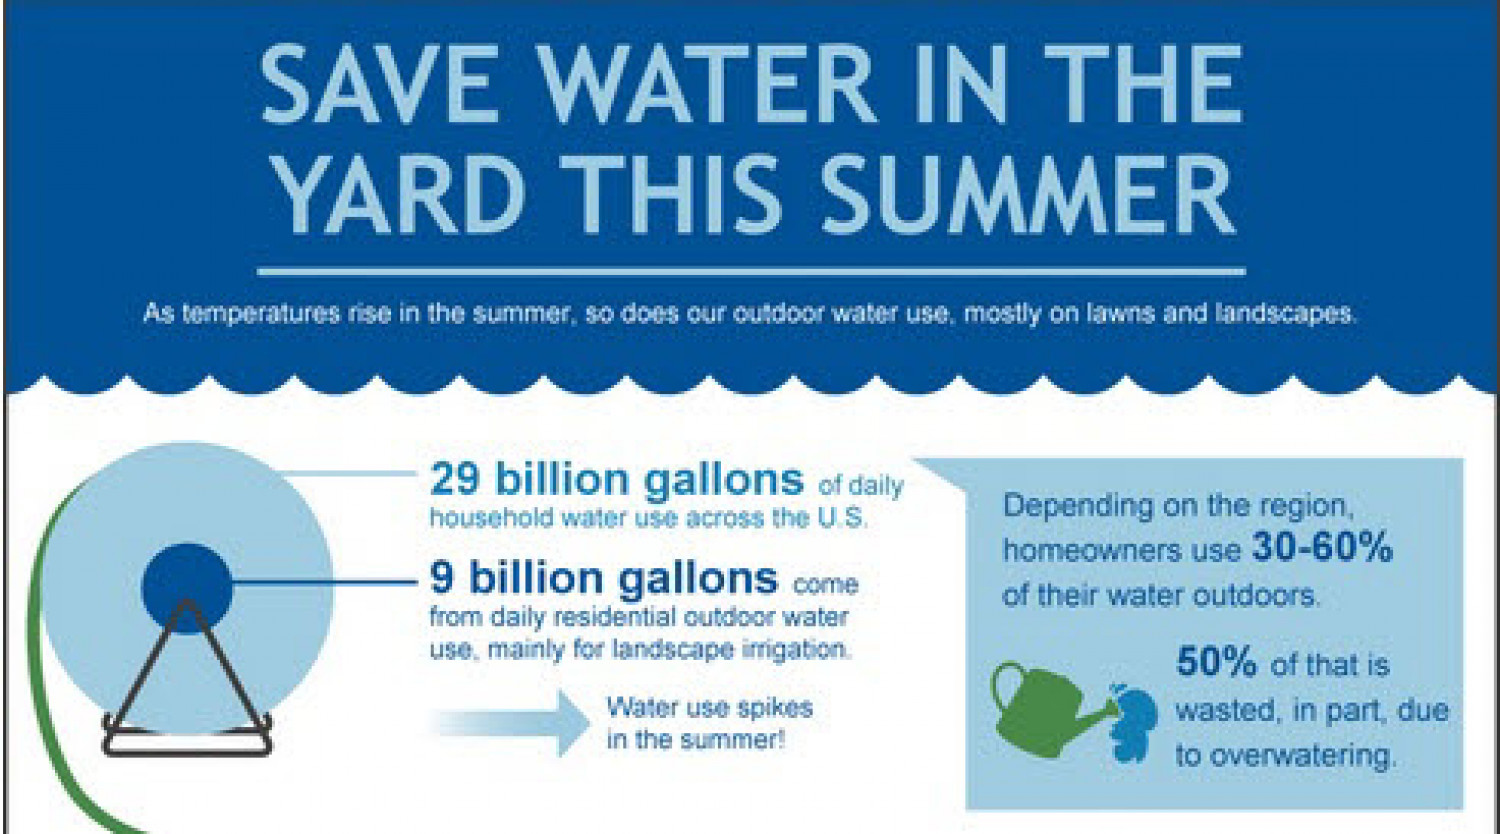 Save Water in the Yard This Summer and Every Summer Infographic